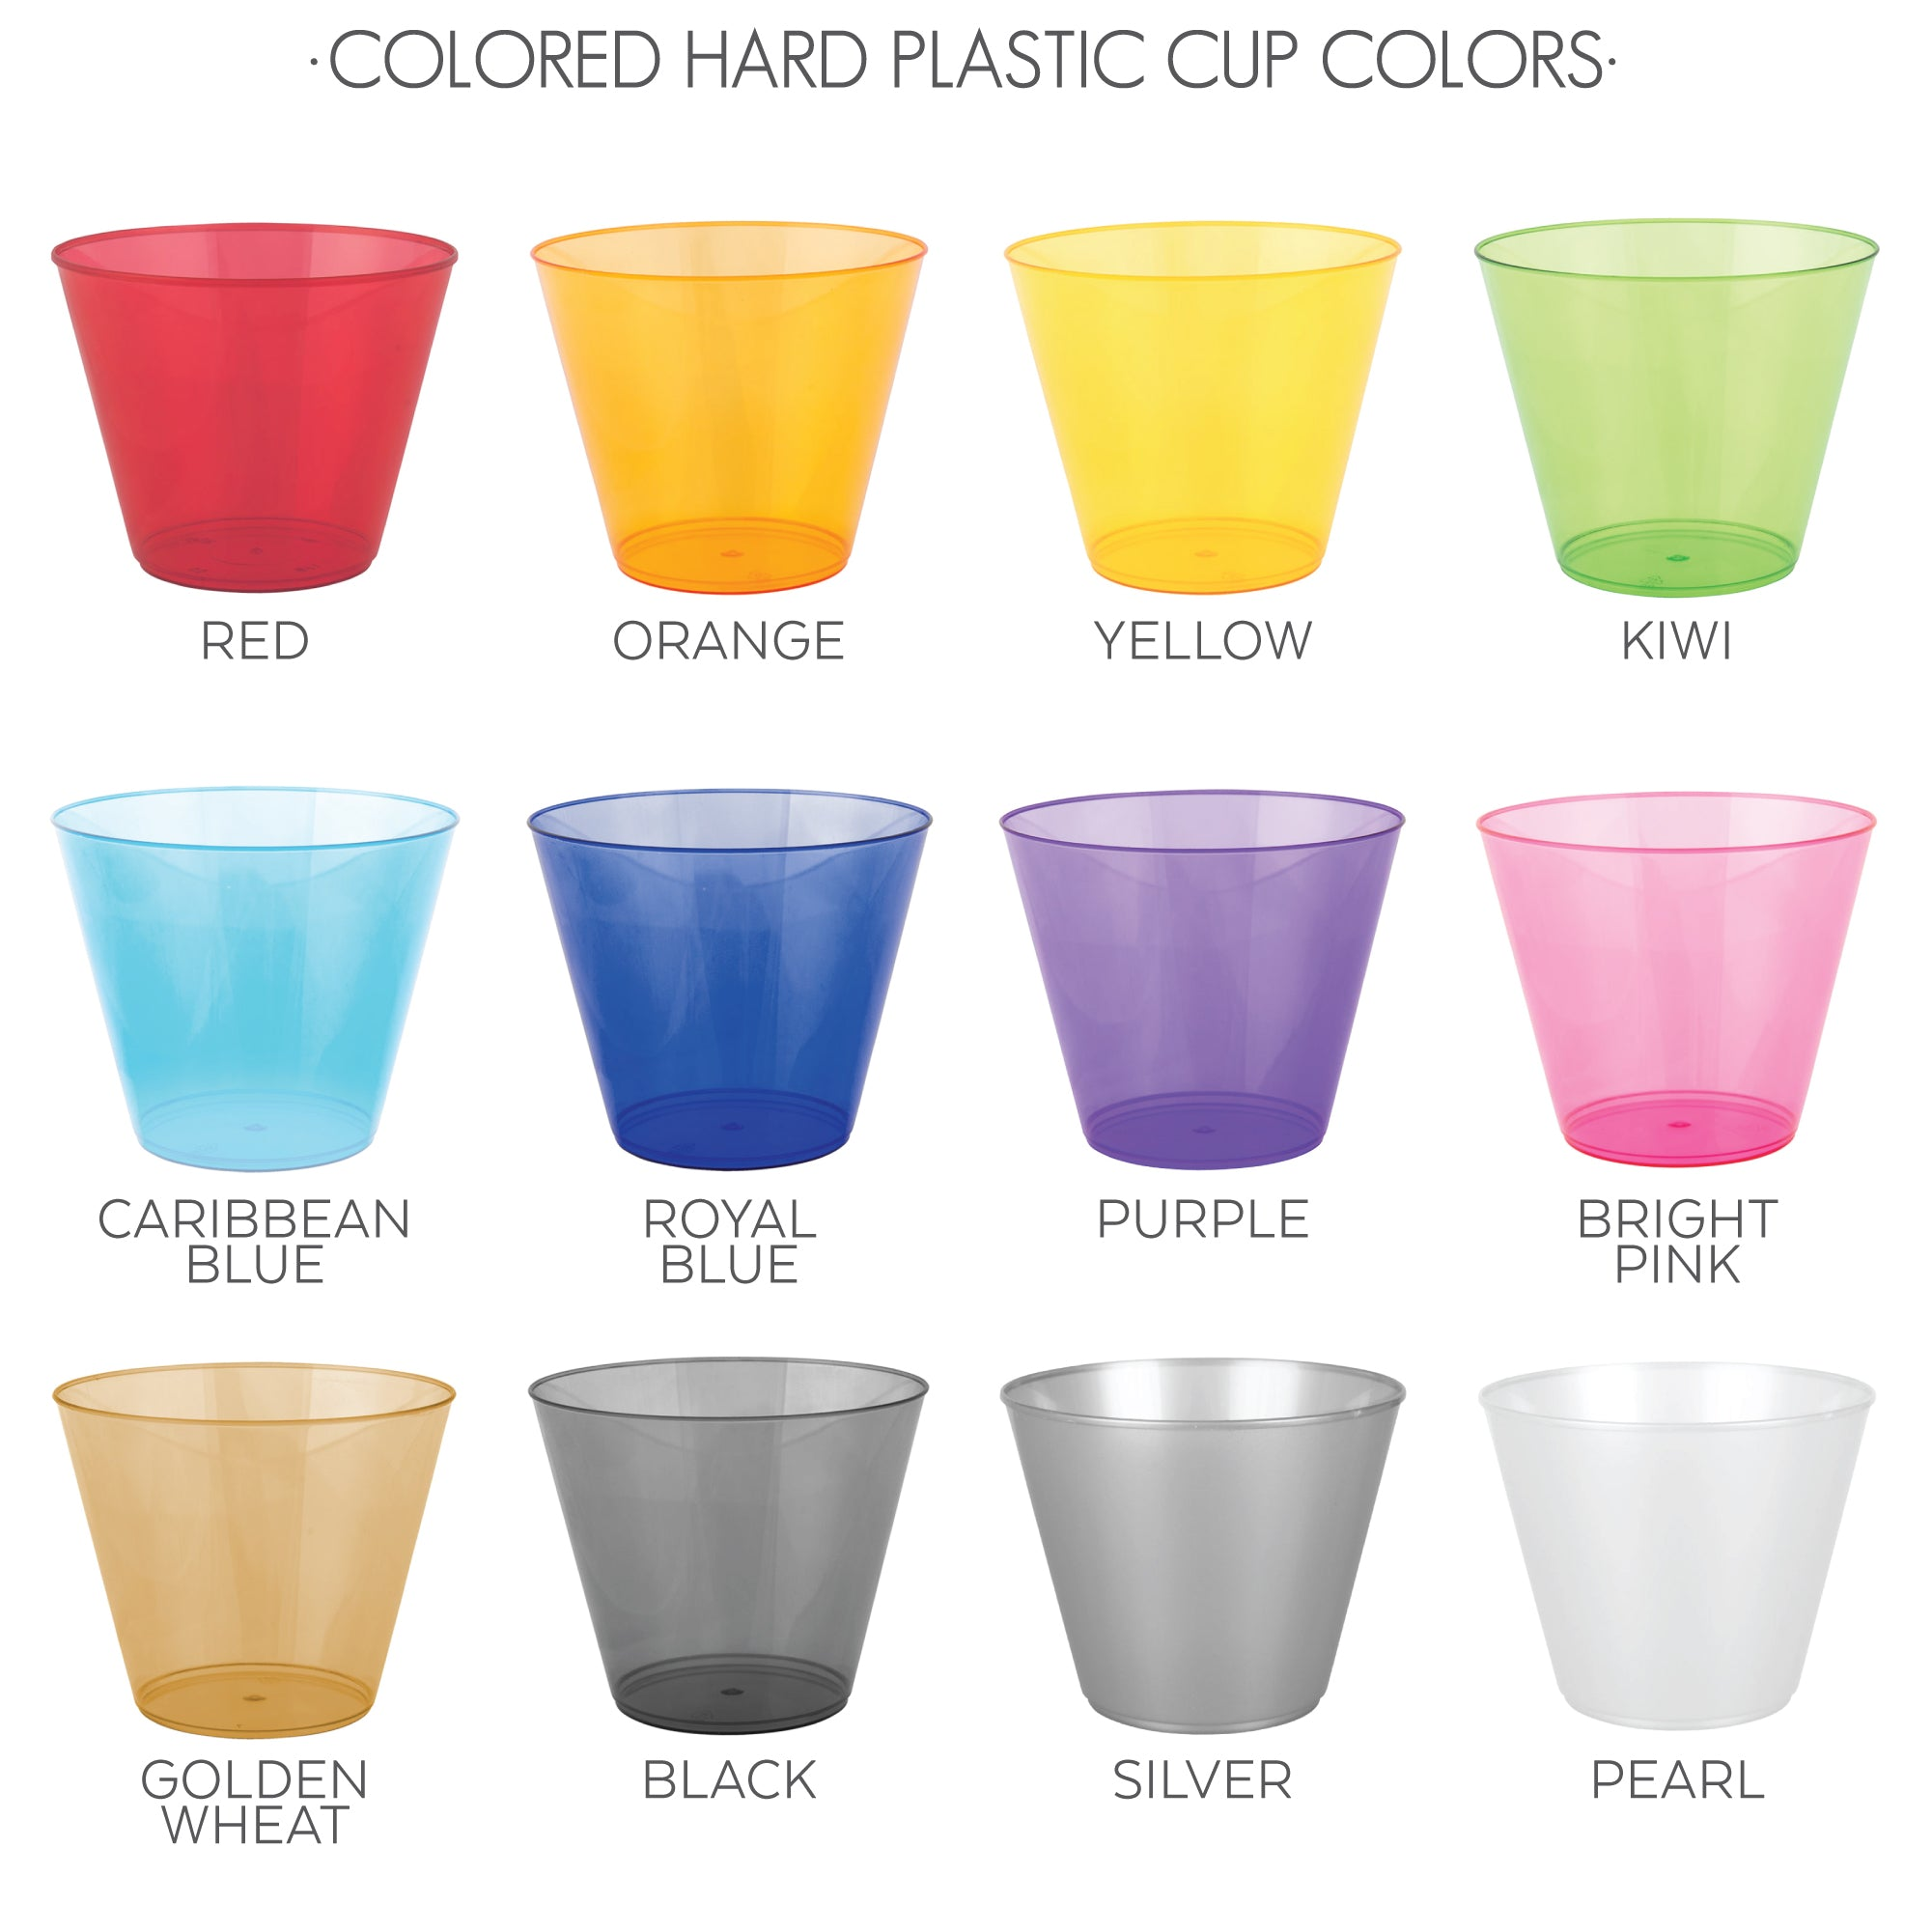 colored hard plastic colors